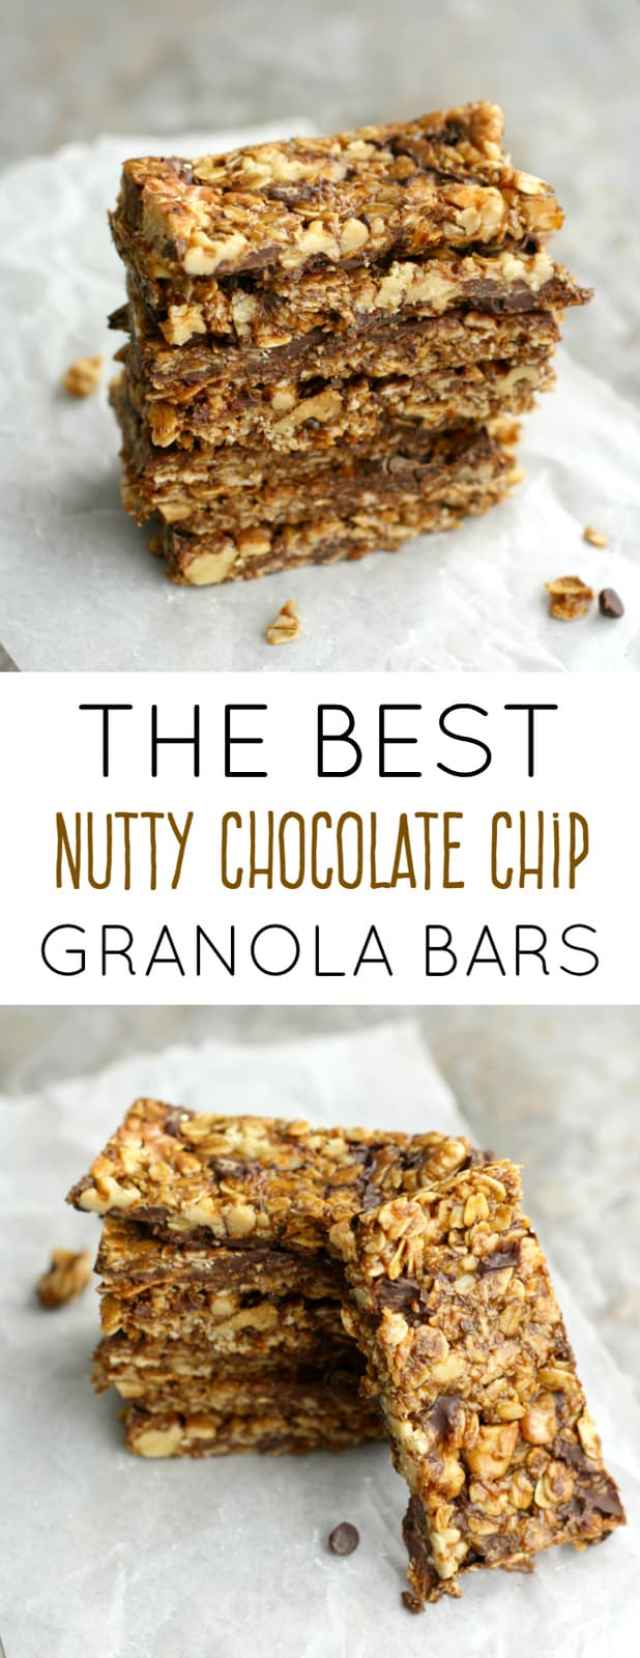 These nutty chocolate chip granola bars are SO good, you'll never want a store bought granola bar again!